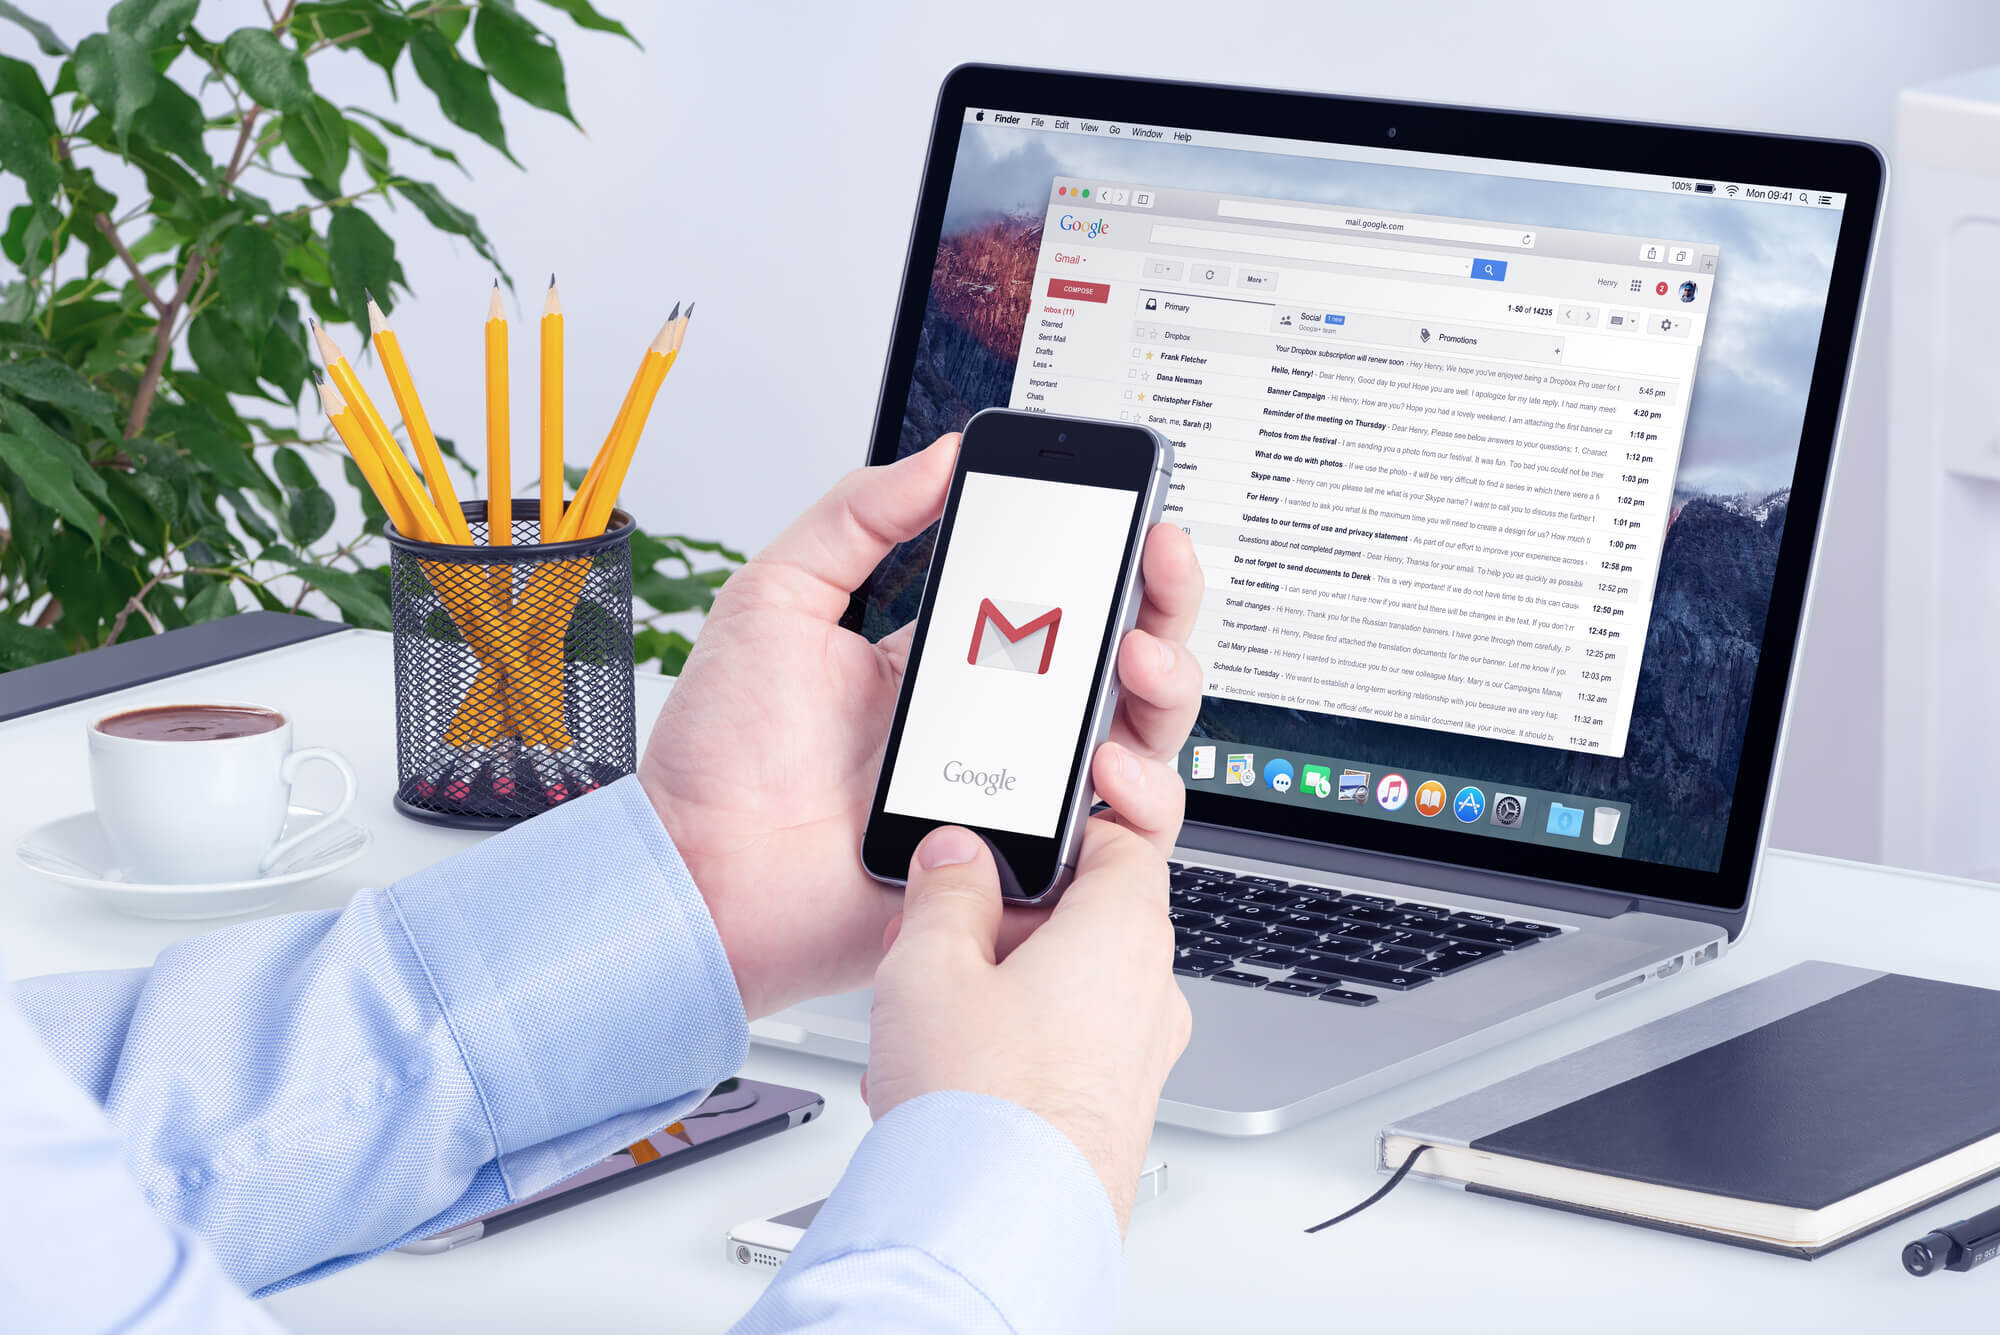 g-mail-features-you-can-use-gmail-even-without-internet-know-how